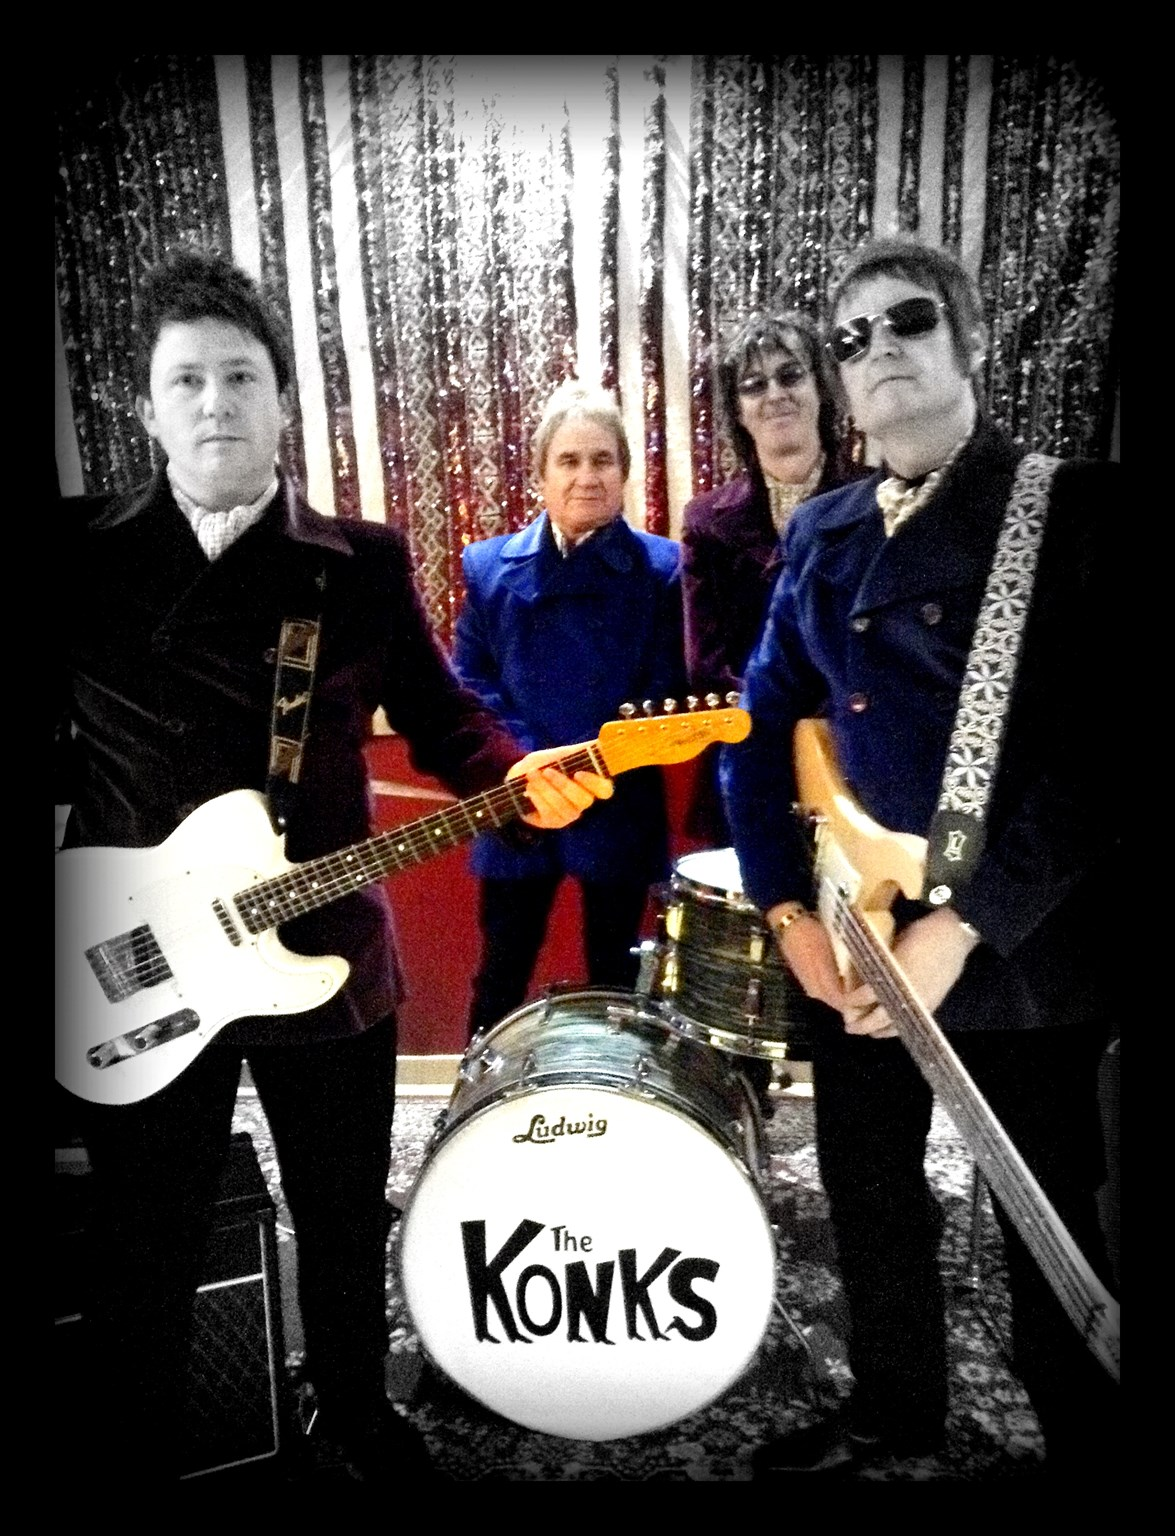 Live music with The Konks